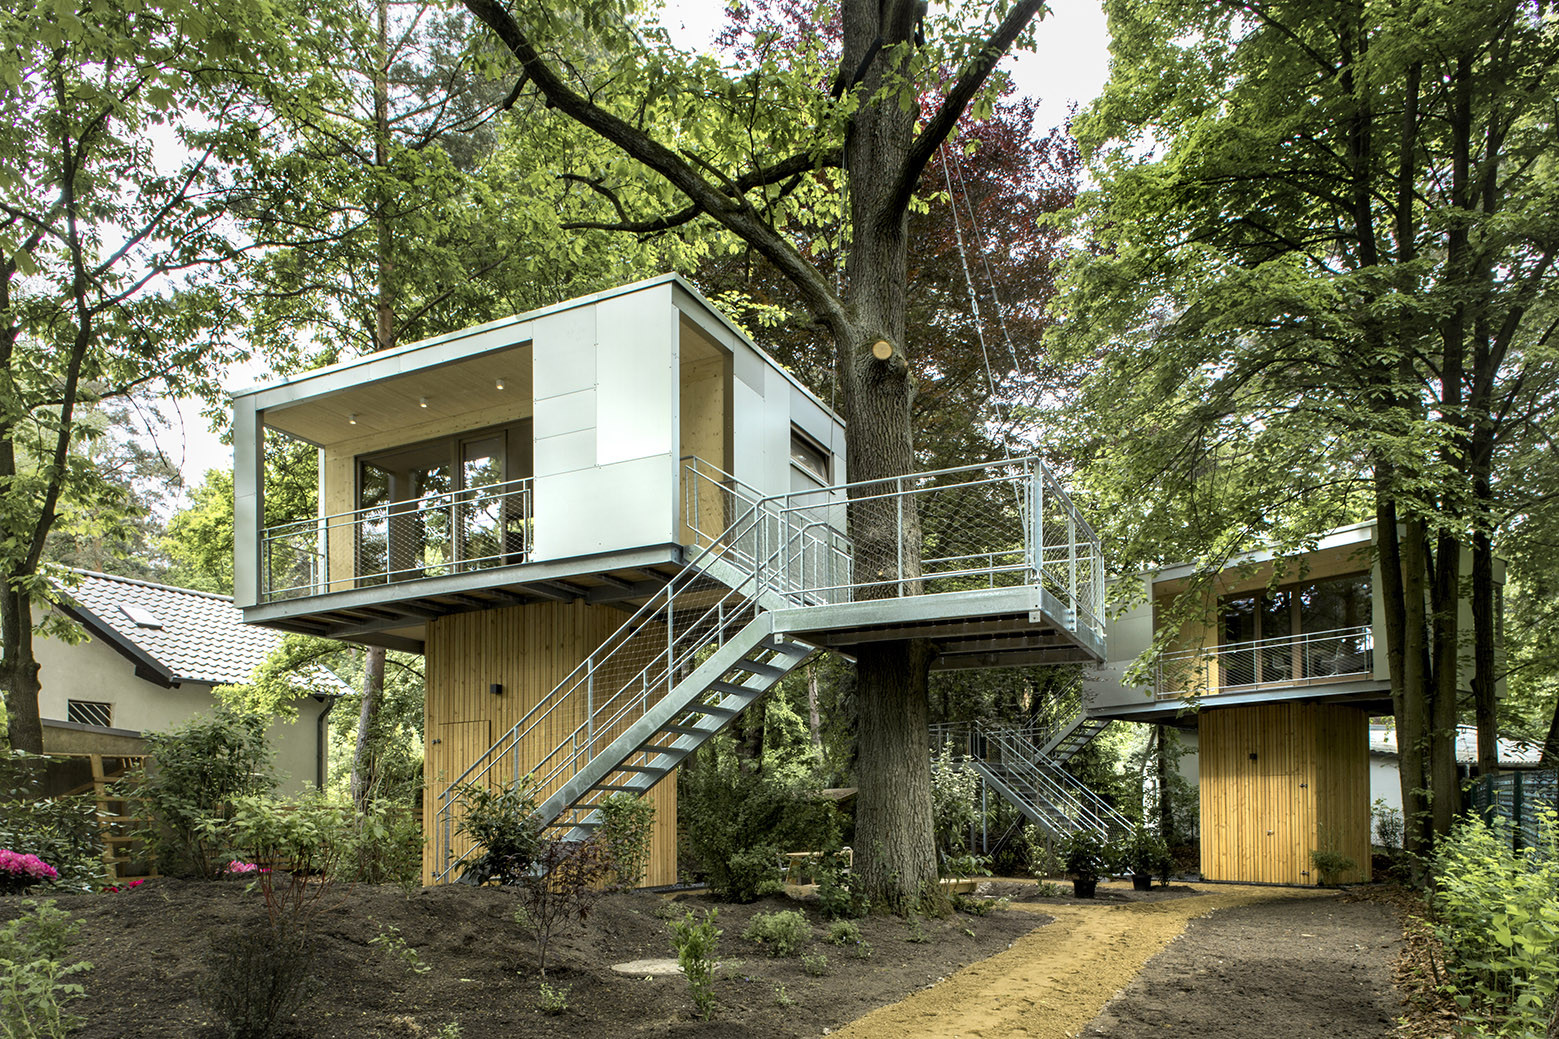 Treehouse Pictures Urban Treehouse Baumraum Archdaily